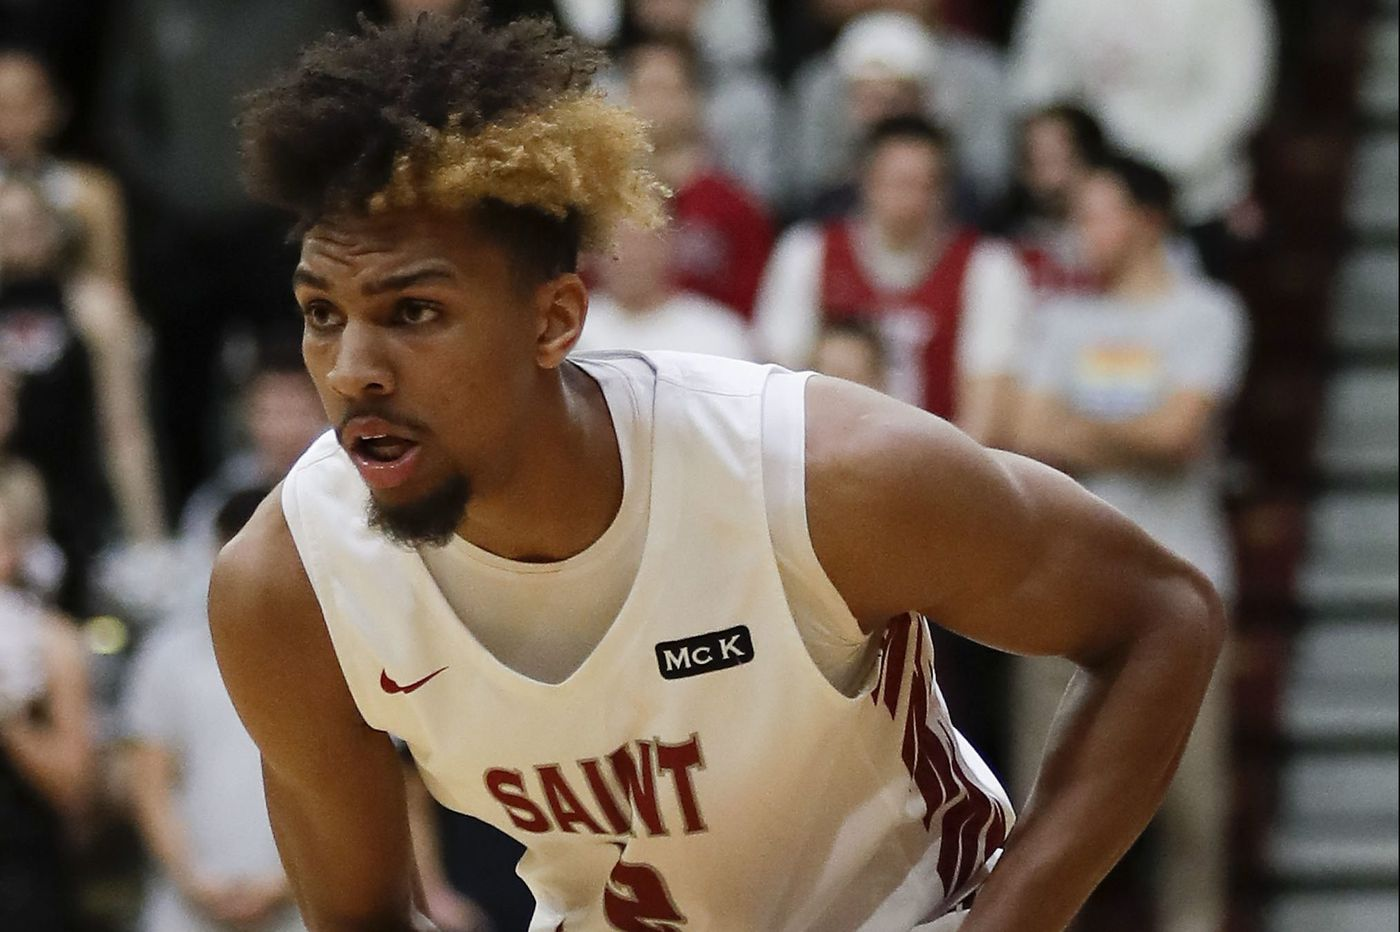 Late rally helps Duquesne trip St. Joseph's, 85-84